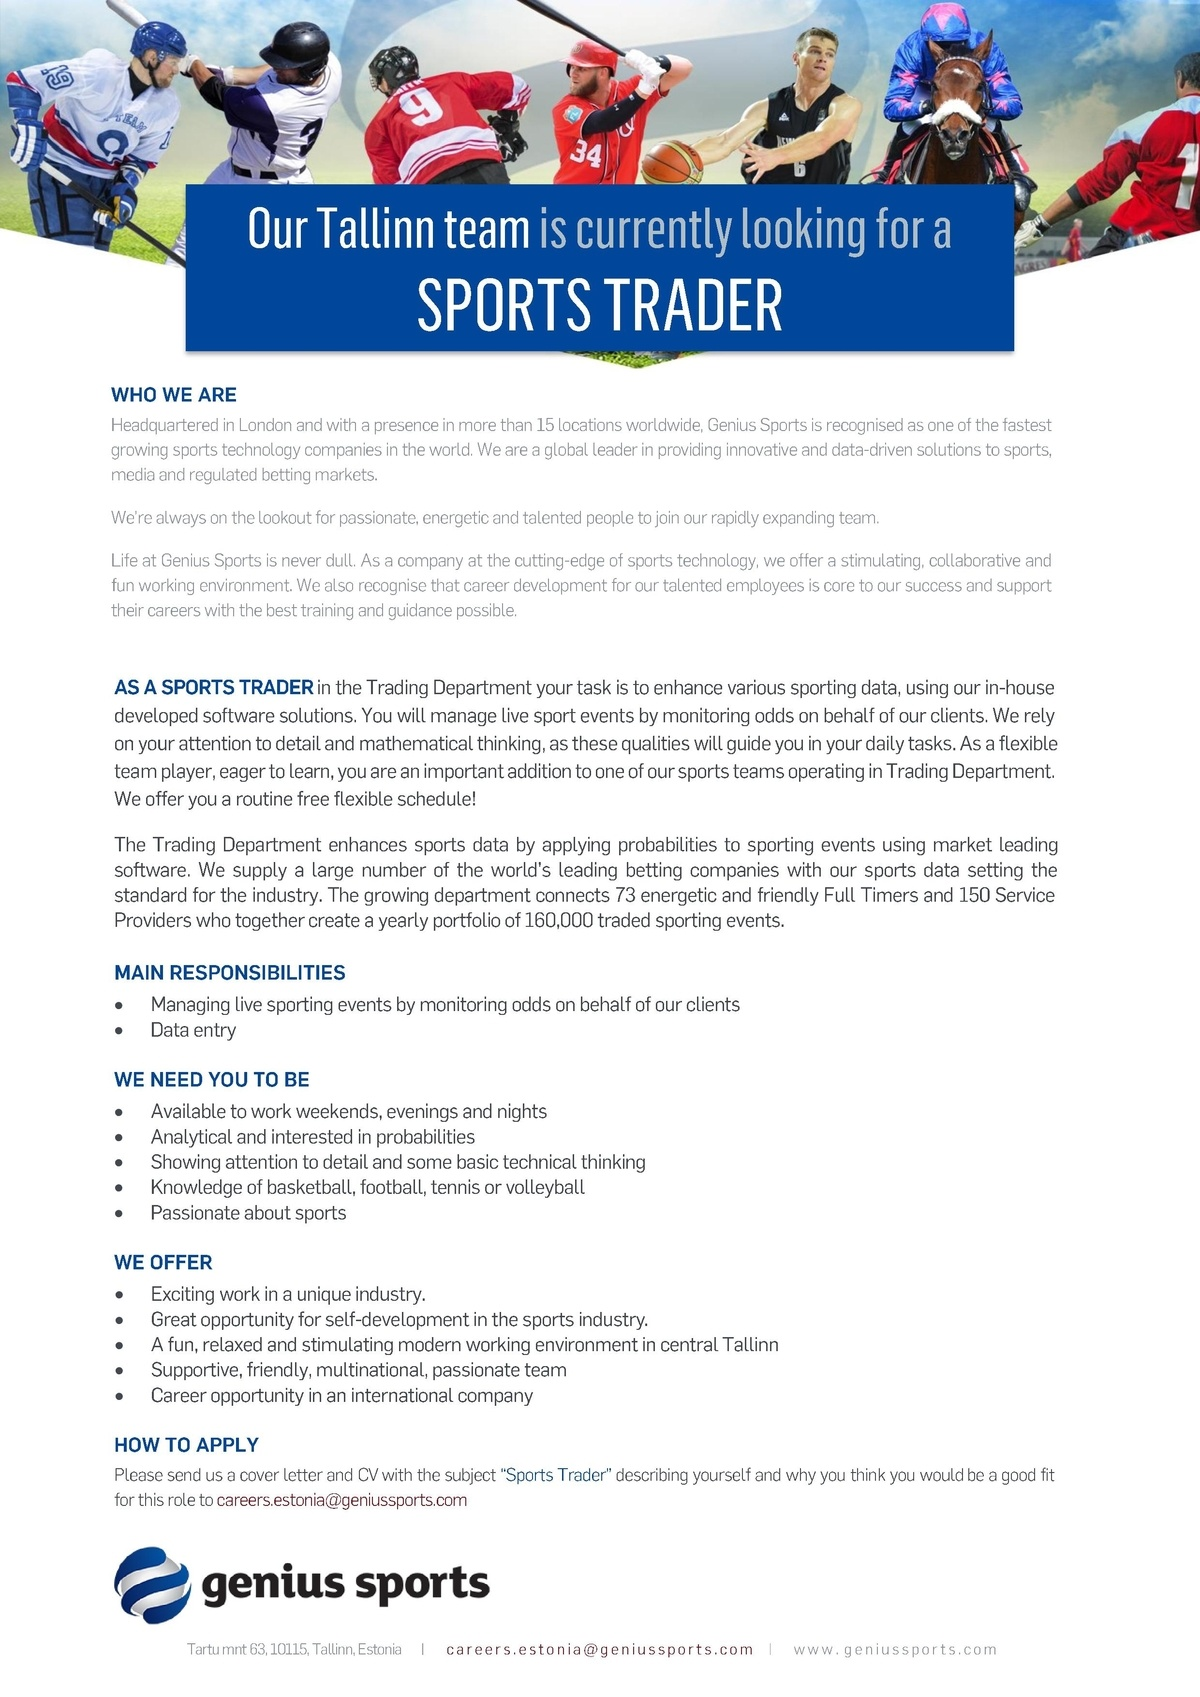 Best Sports Trader Cover Letter Photos - Printable Coloring Pages ...